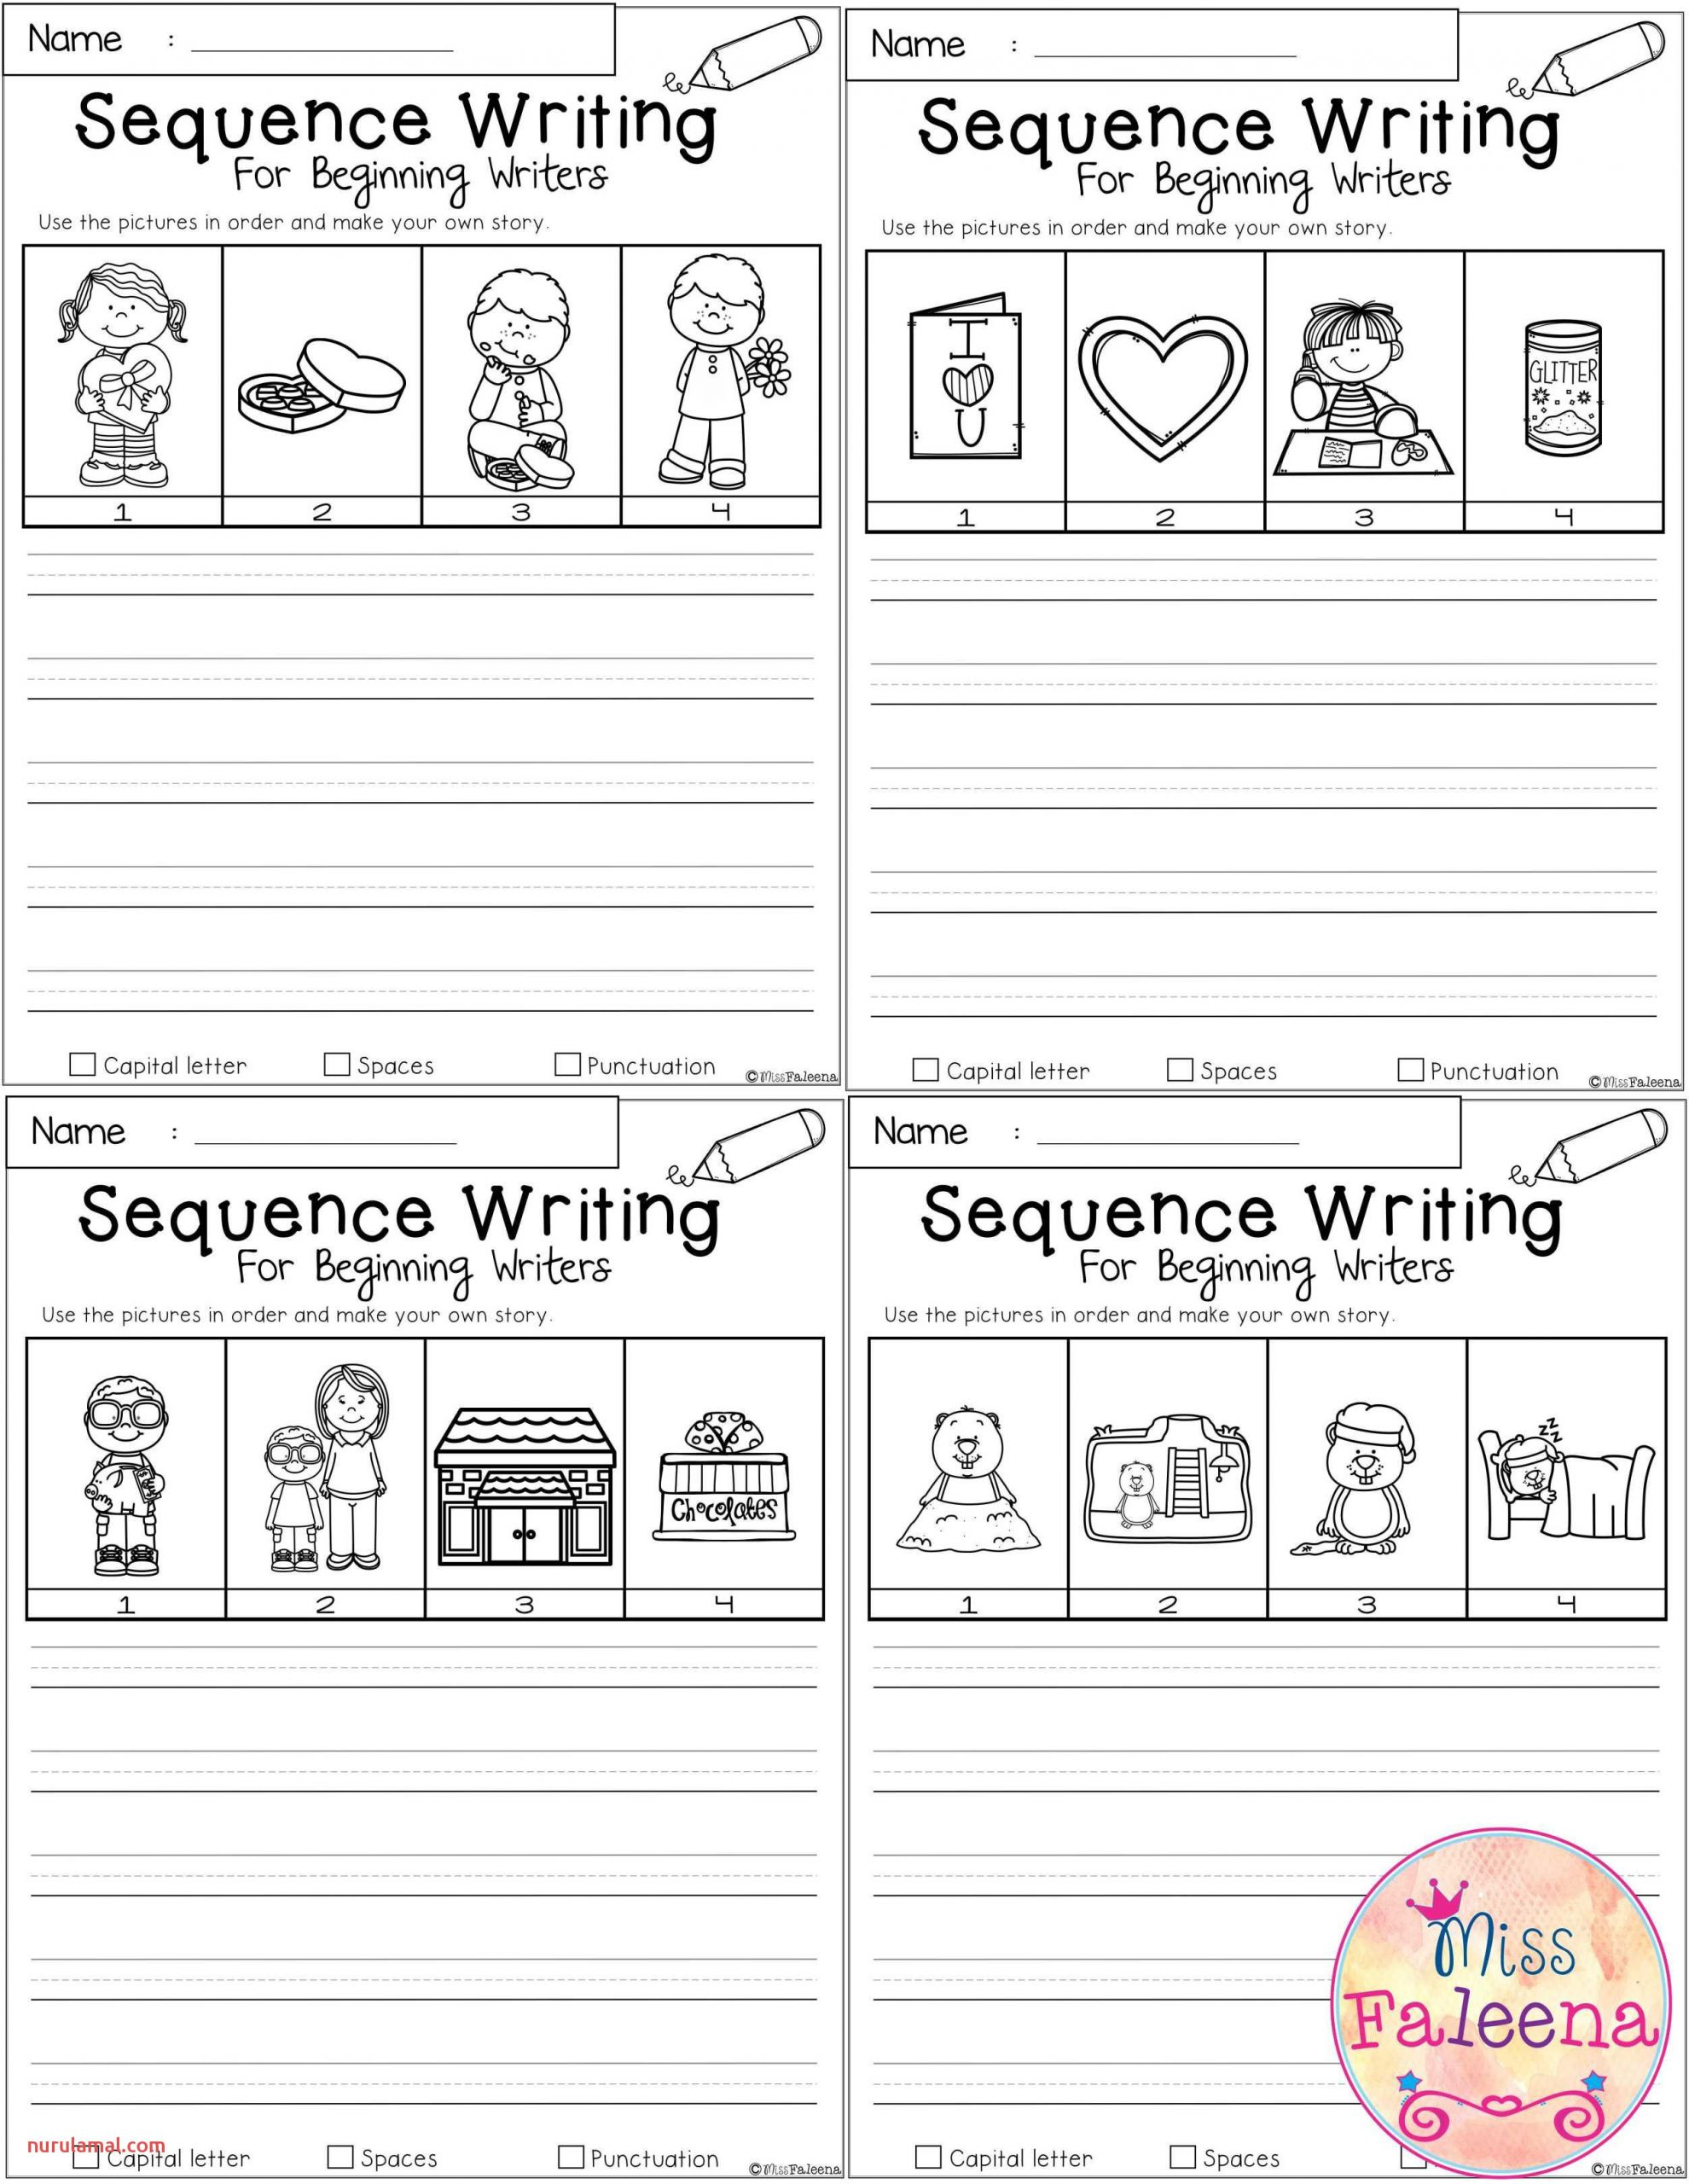 February Sequence Writing for Beginning Writers